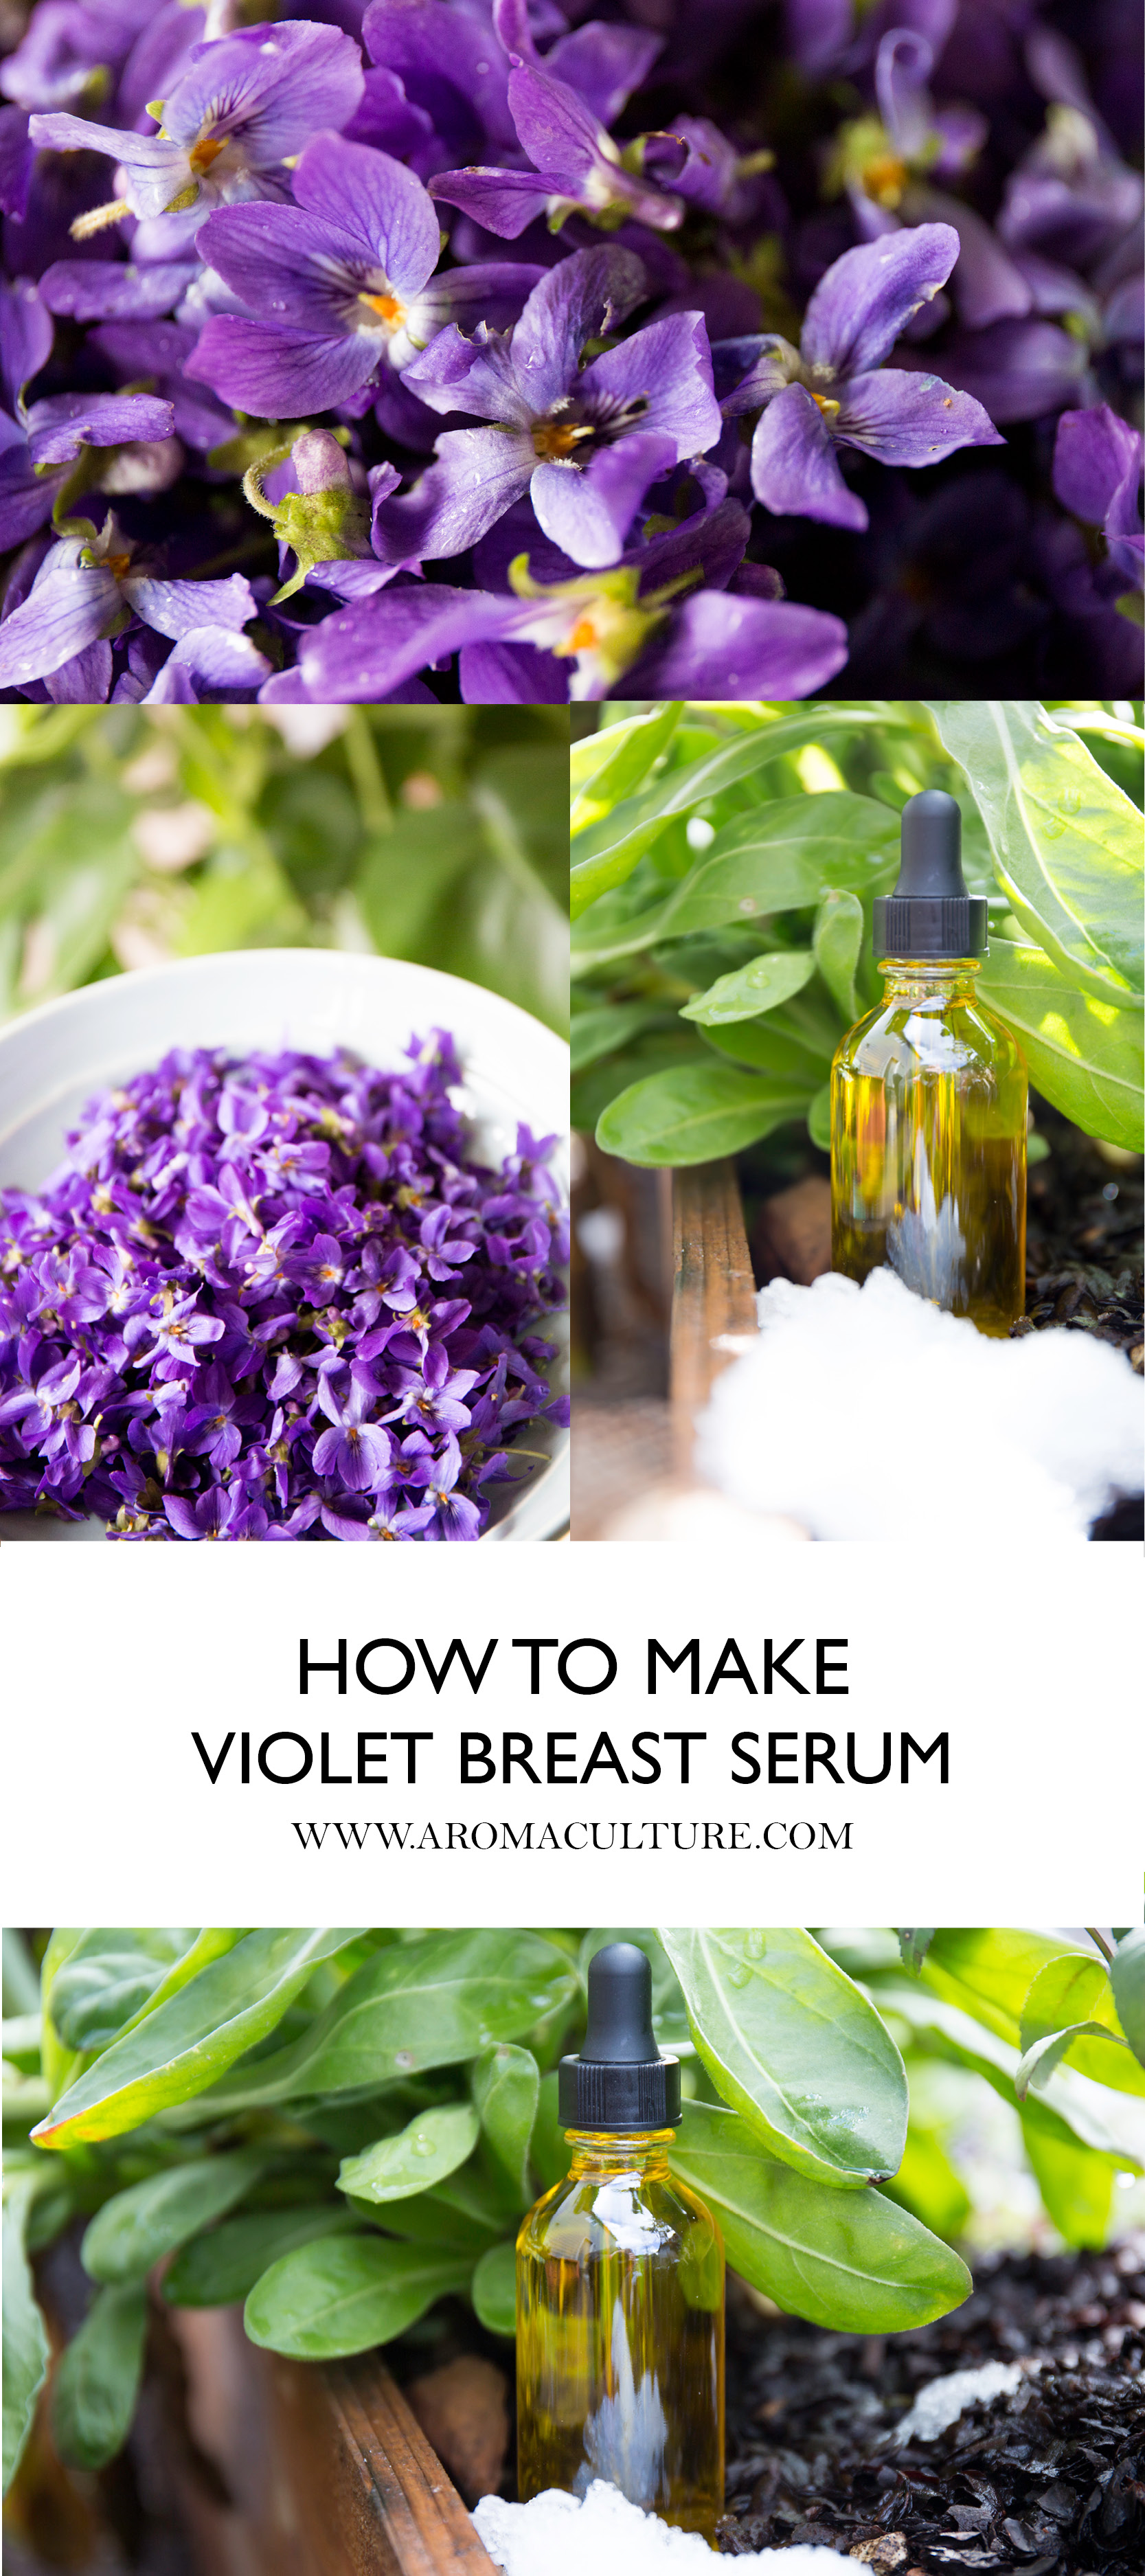 HOW TO MAKE VIOLET BREAST SERUM.jpg